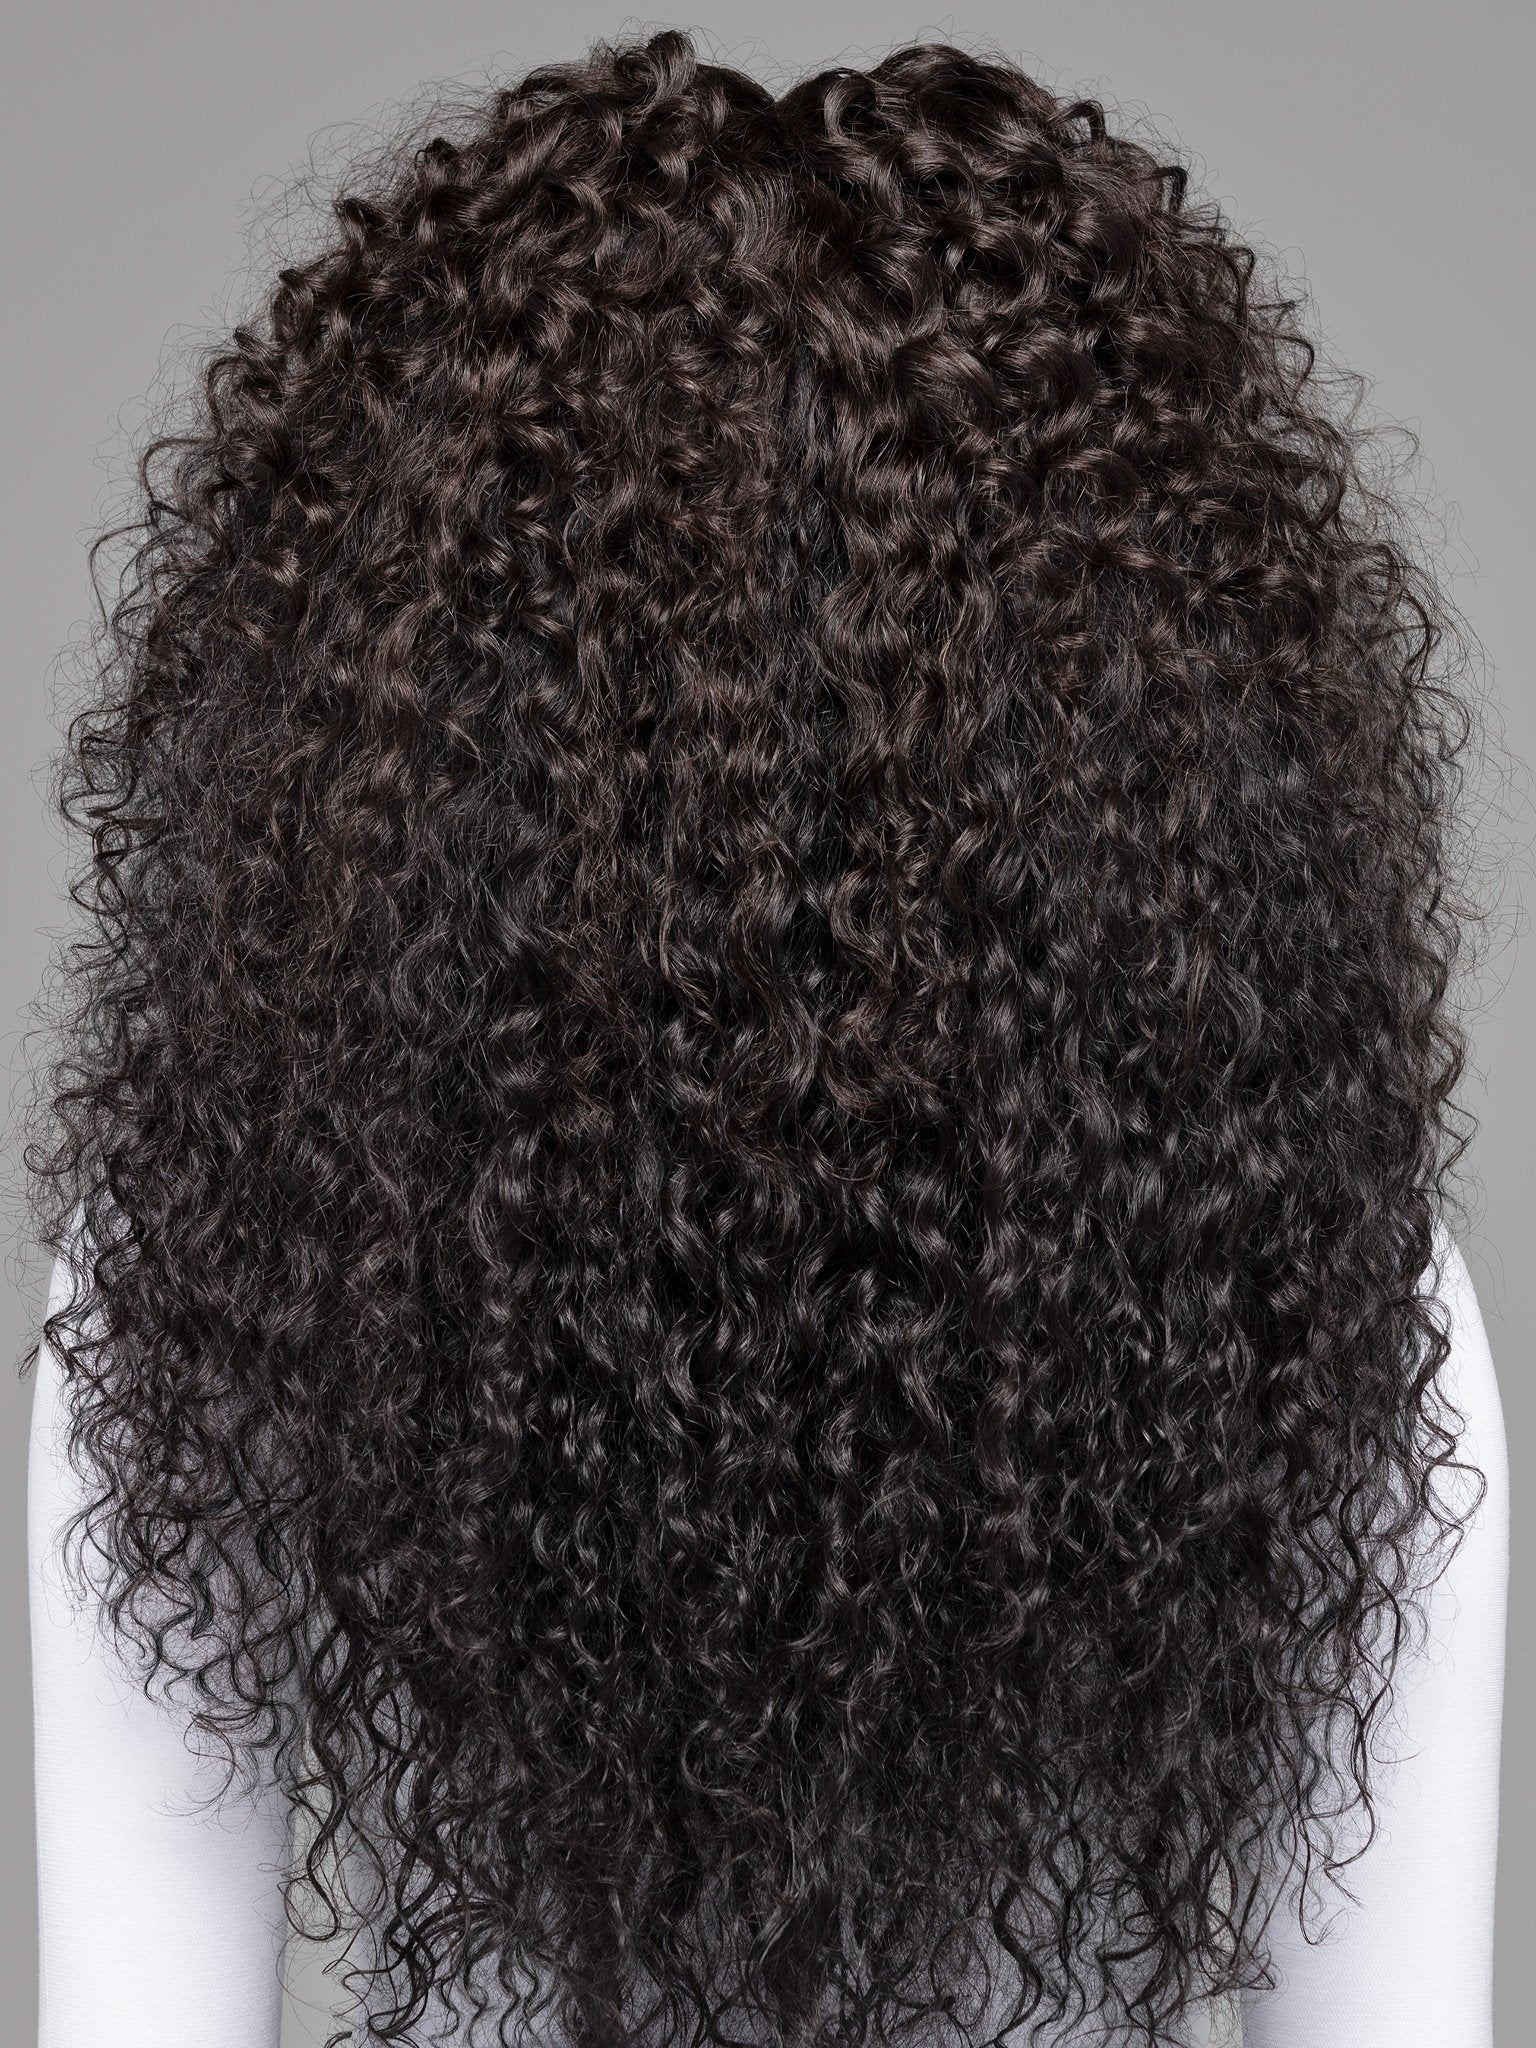 Pure Cambodian Curly Hair Extensions - Cambodian Hair Freak LLC